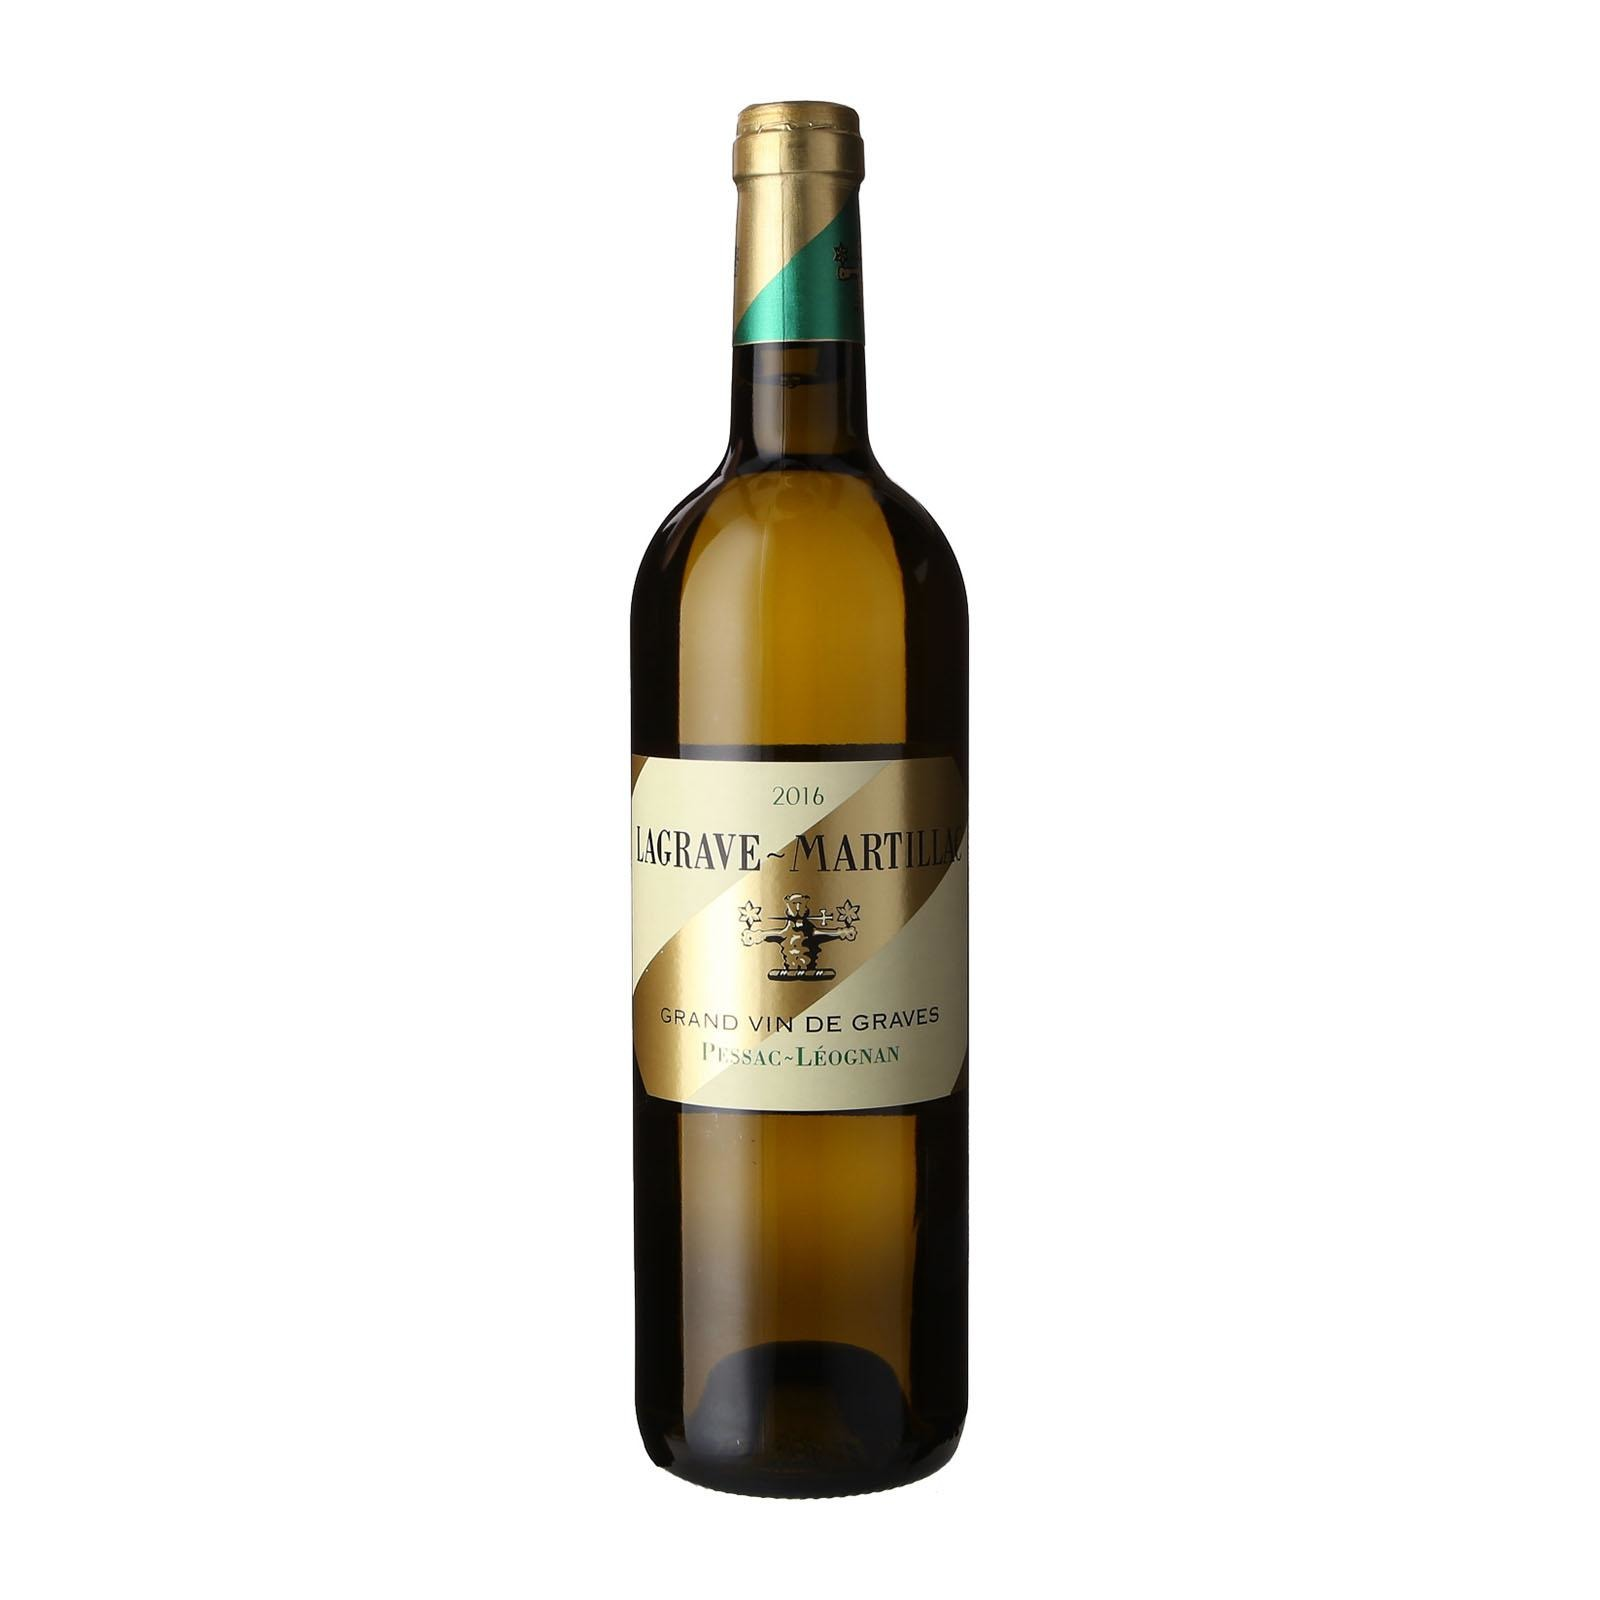 Chateau Lagrave Martillac Blanc Grand Vin de Graves-By Culina